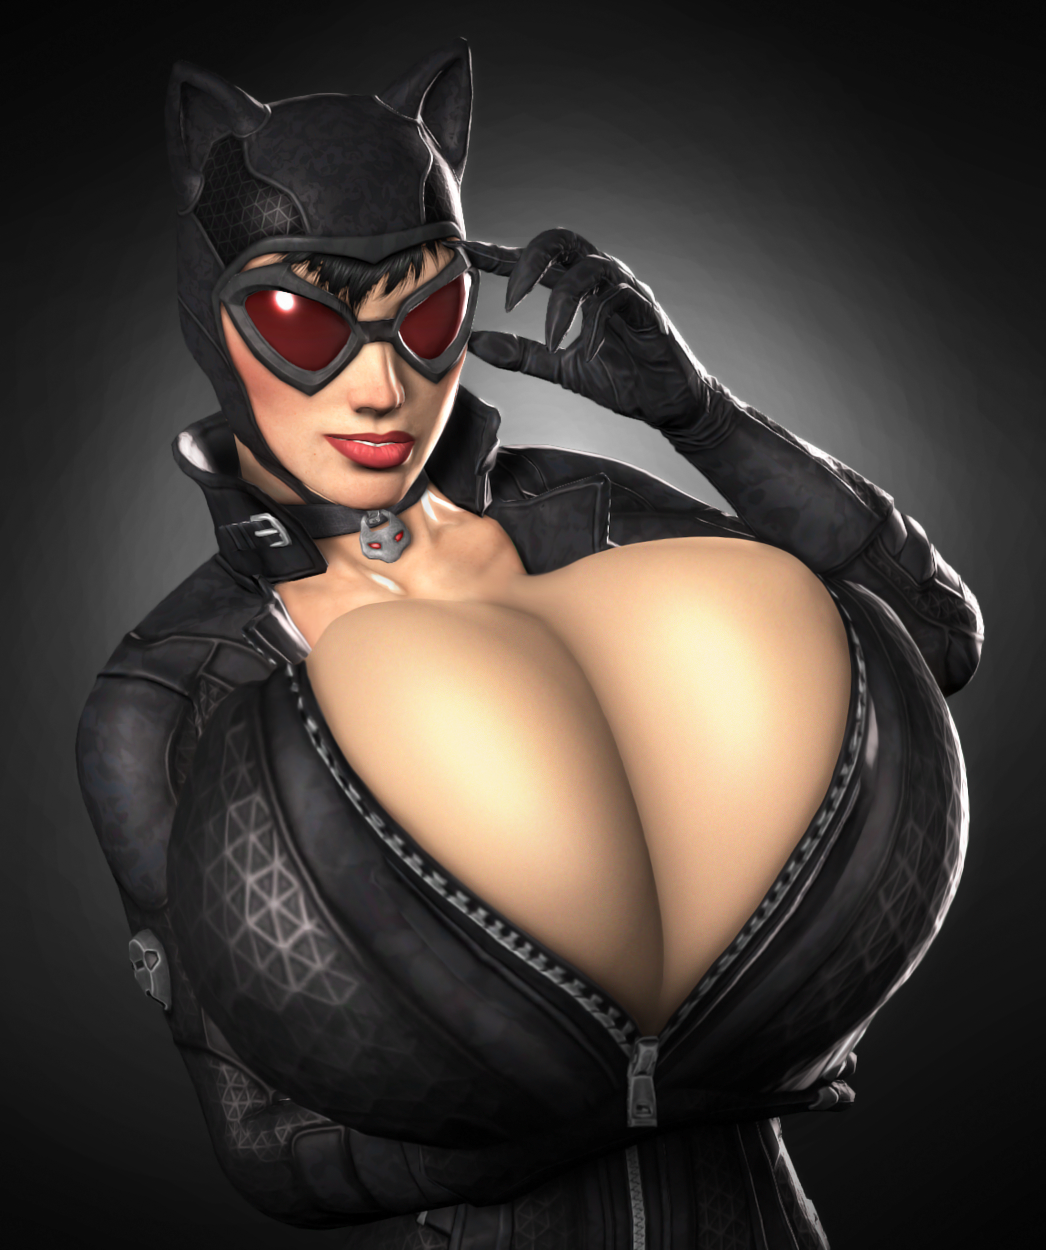 catwoman cat burglar porn - babes - hot photos